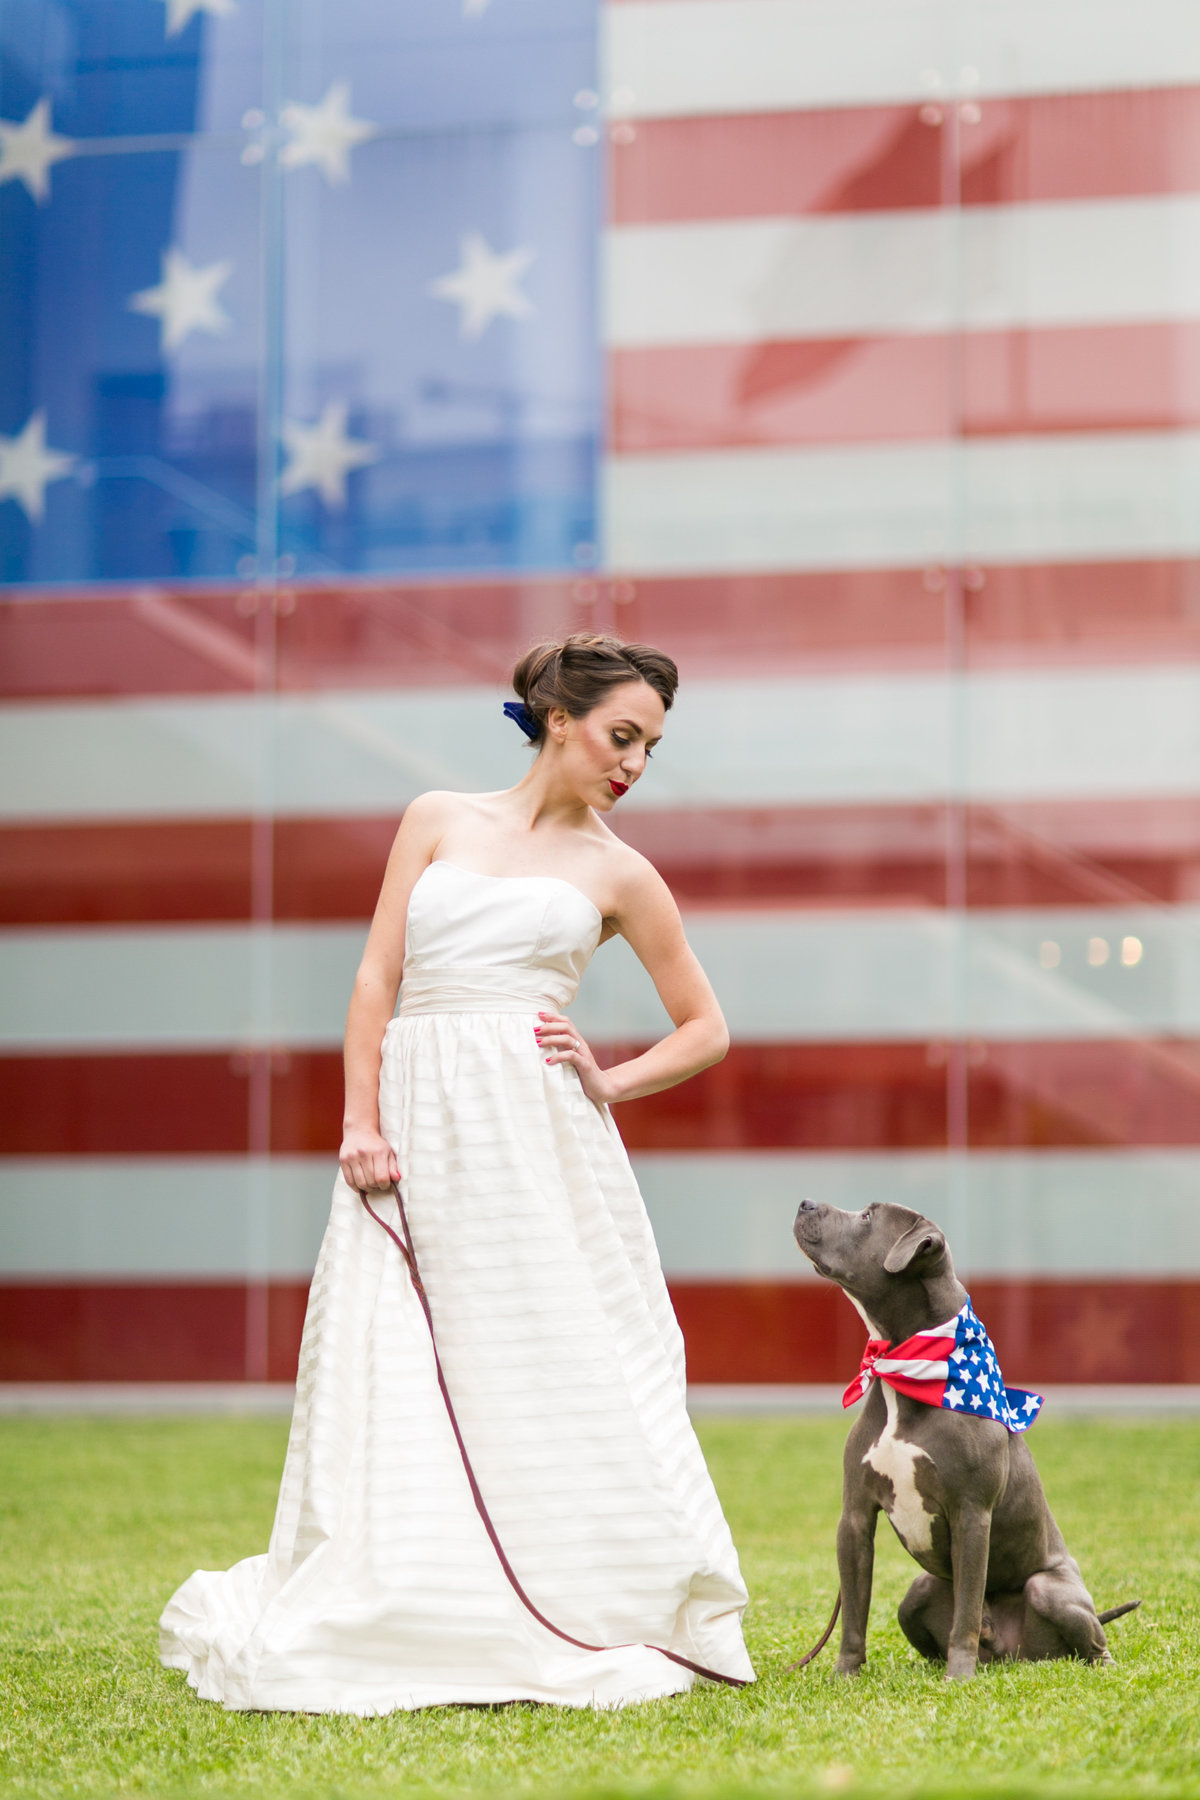 Baltimore Flag museum wedding with a blue pit bull